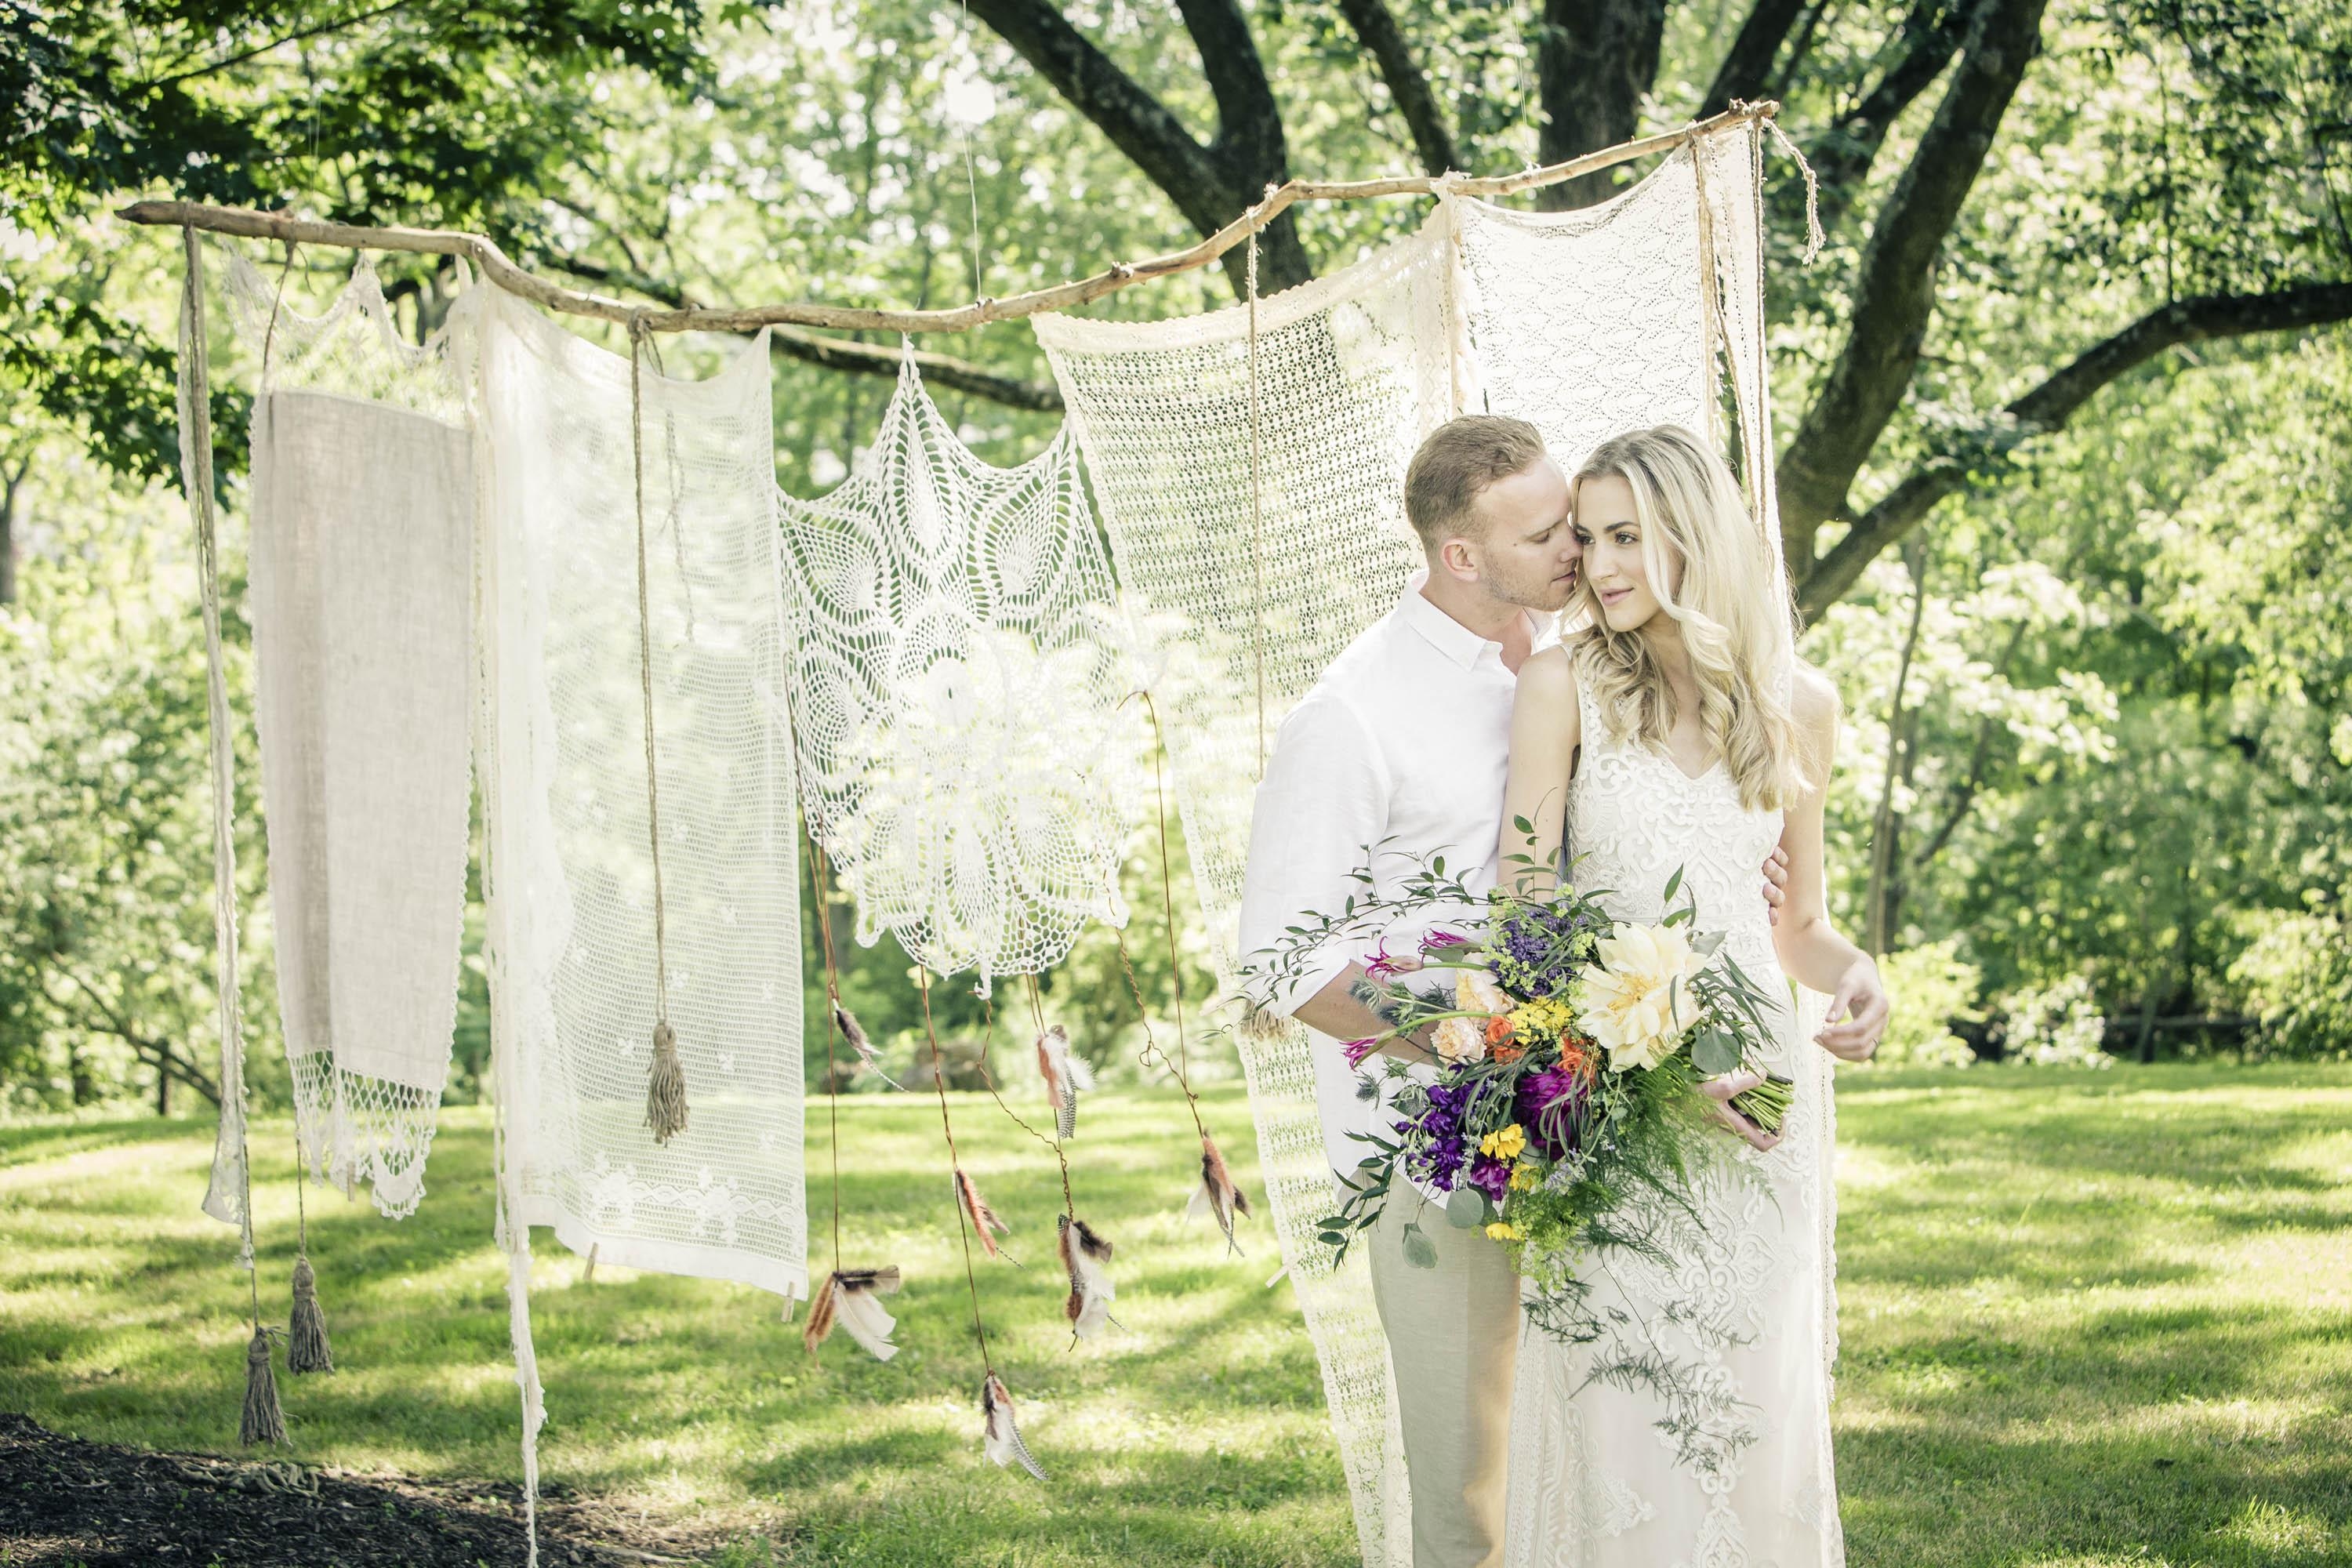 Newlyweds in front of white blankets and feathers hanging from tree